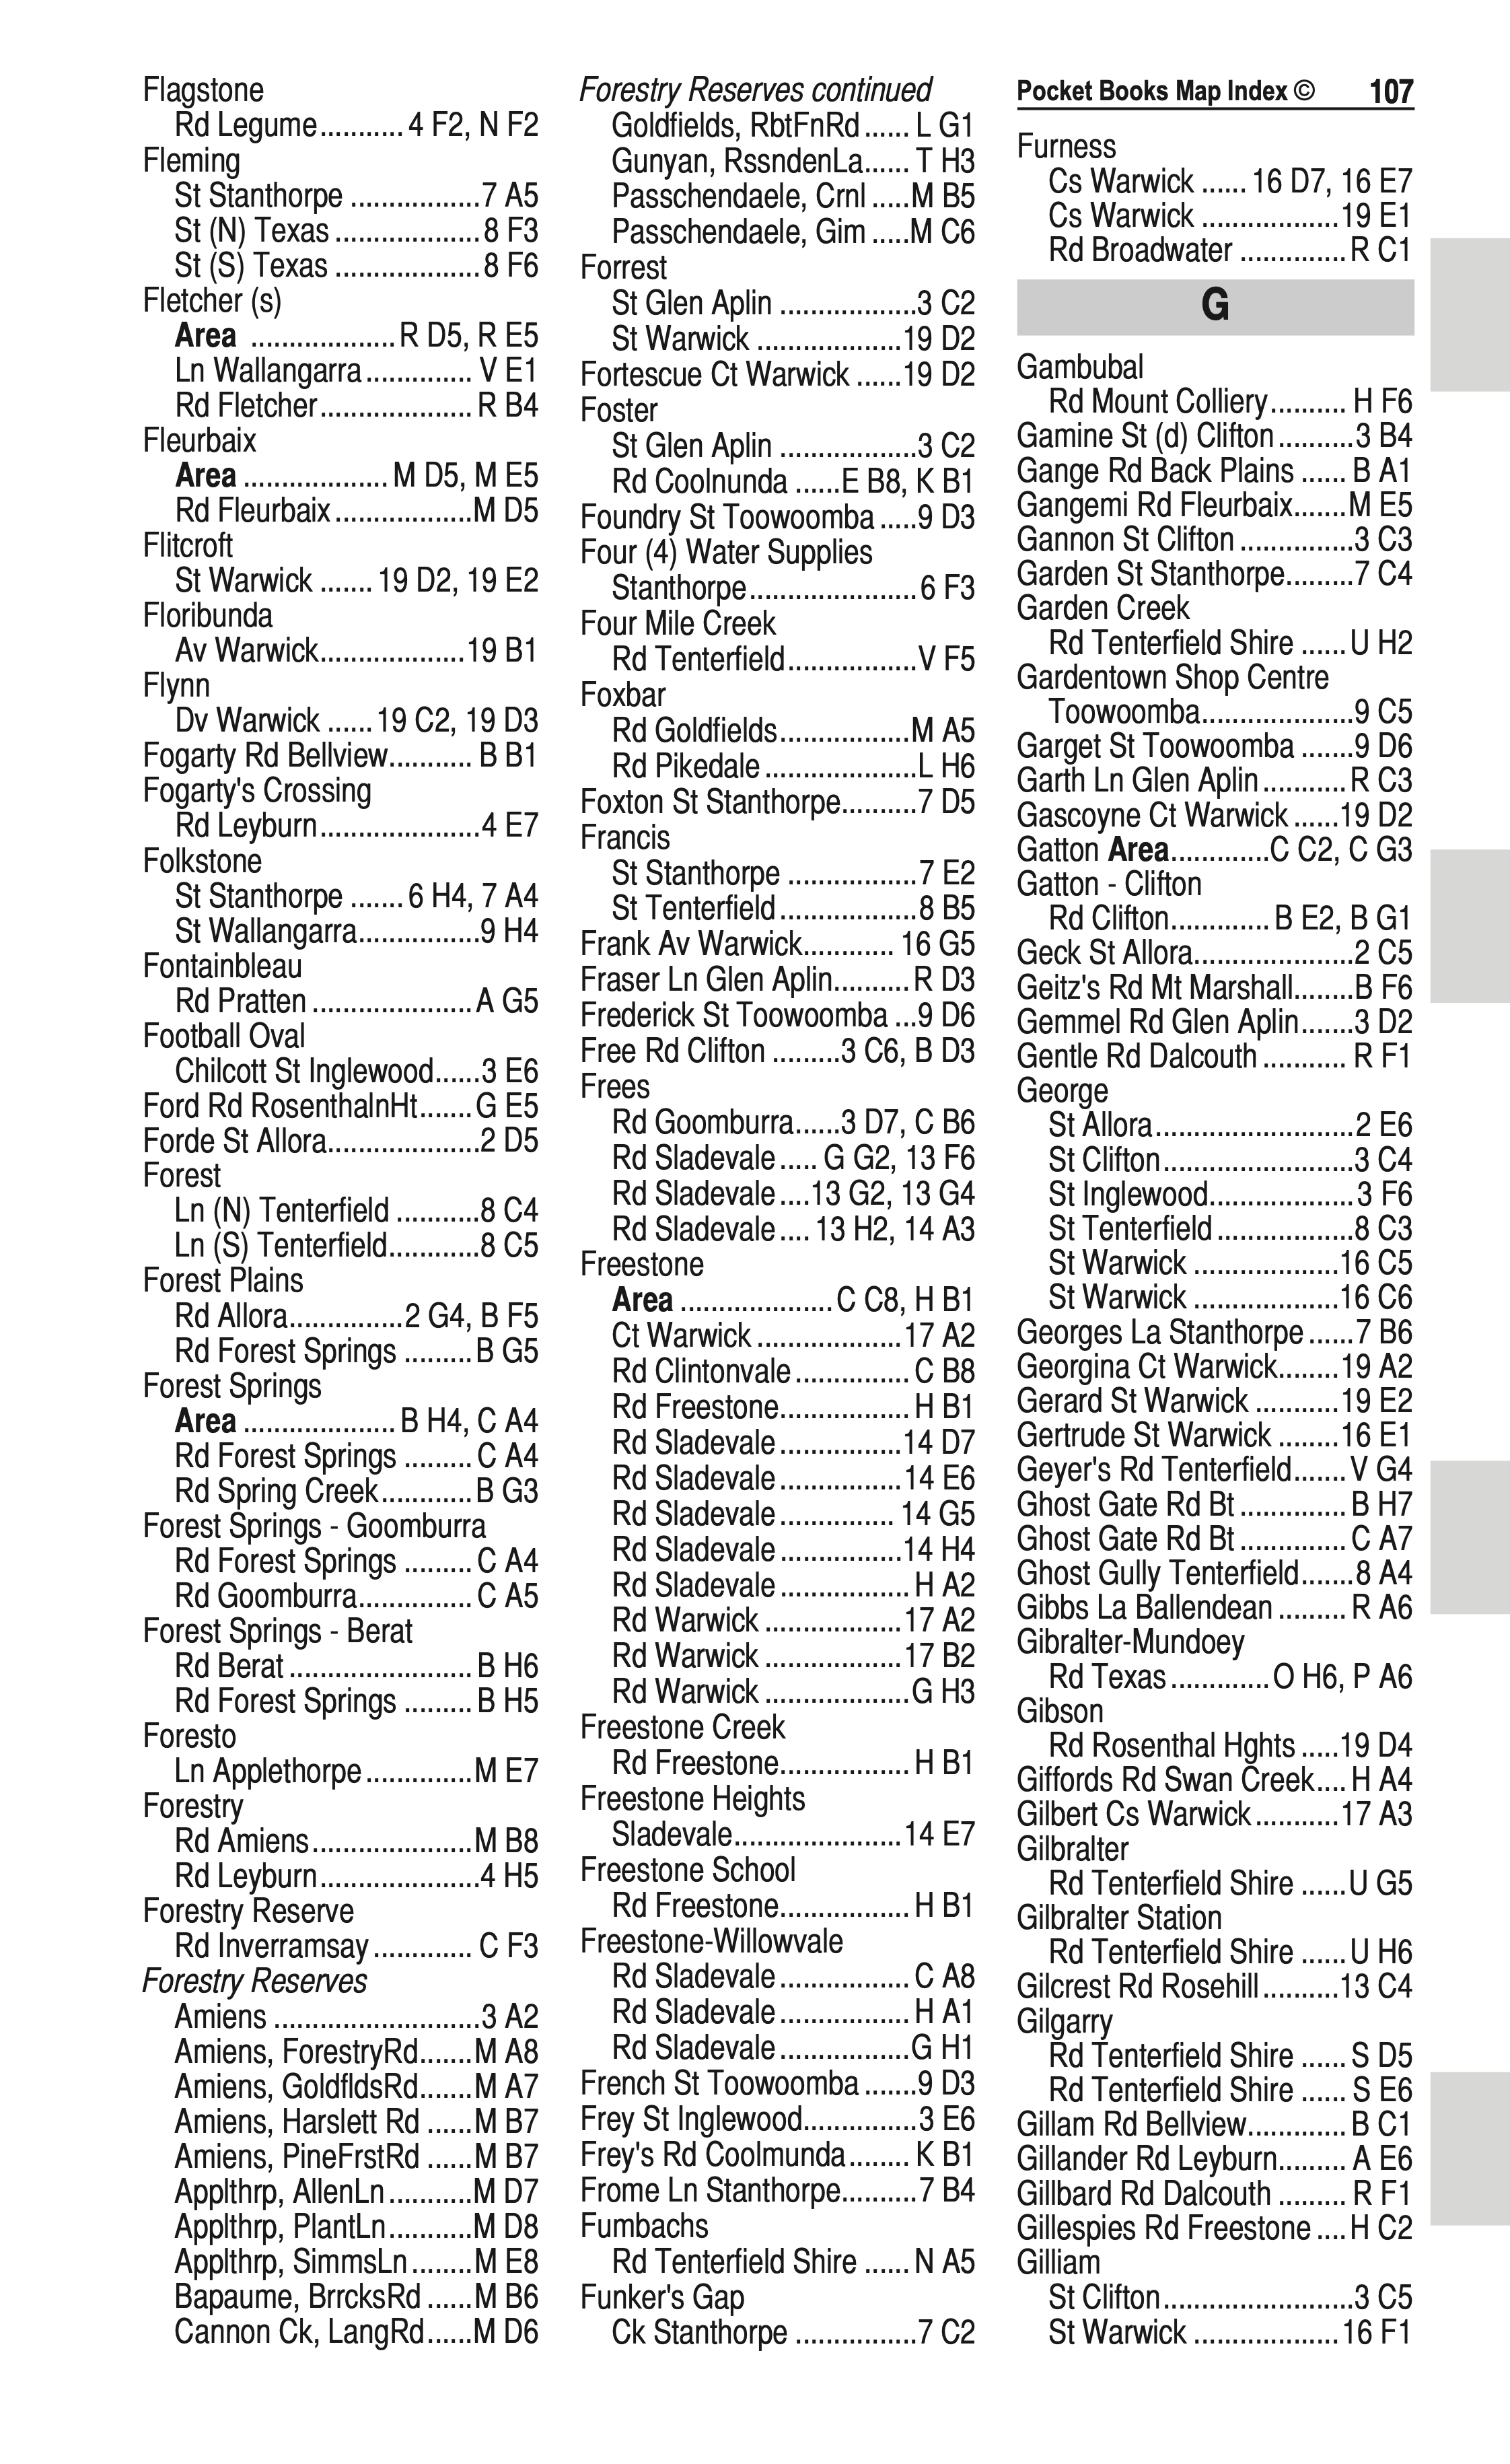 Abood Rick | Upholsterers & Upholstery in Warwick | PBezy Pocket Books local directories - page 107